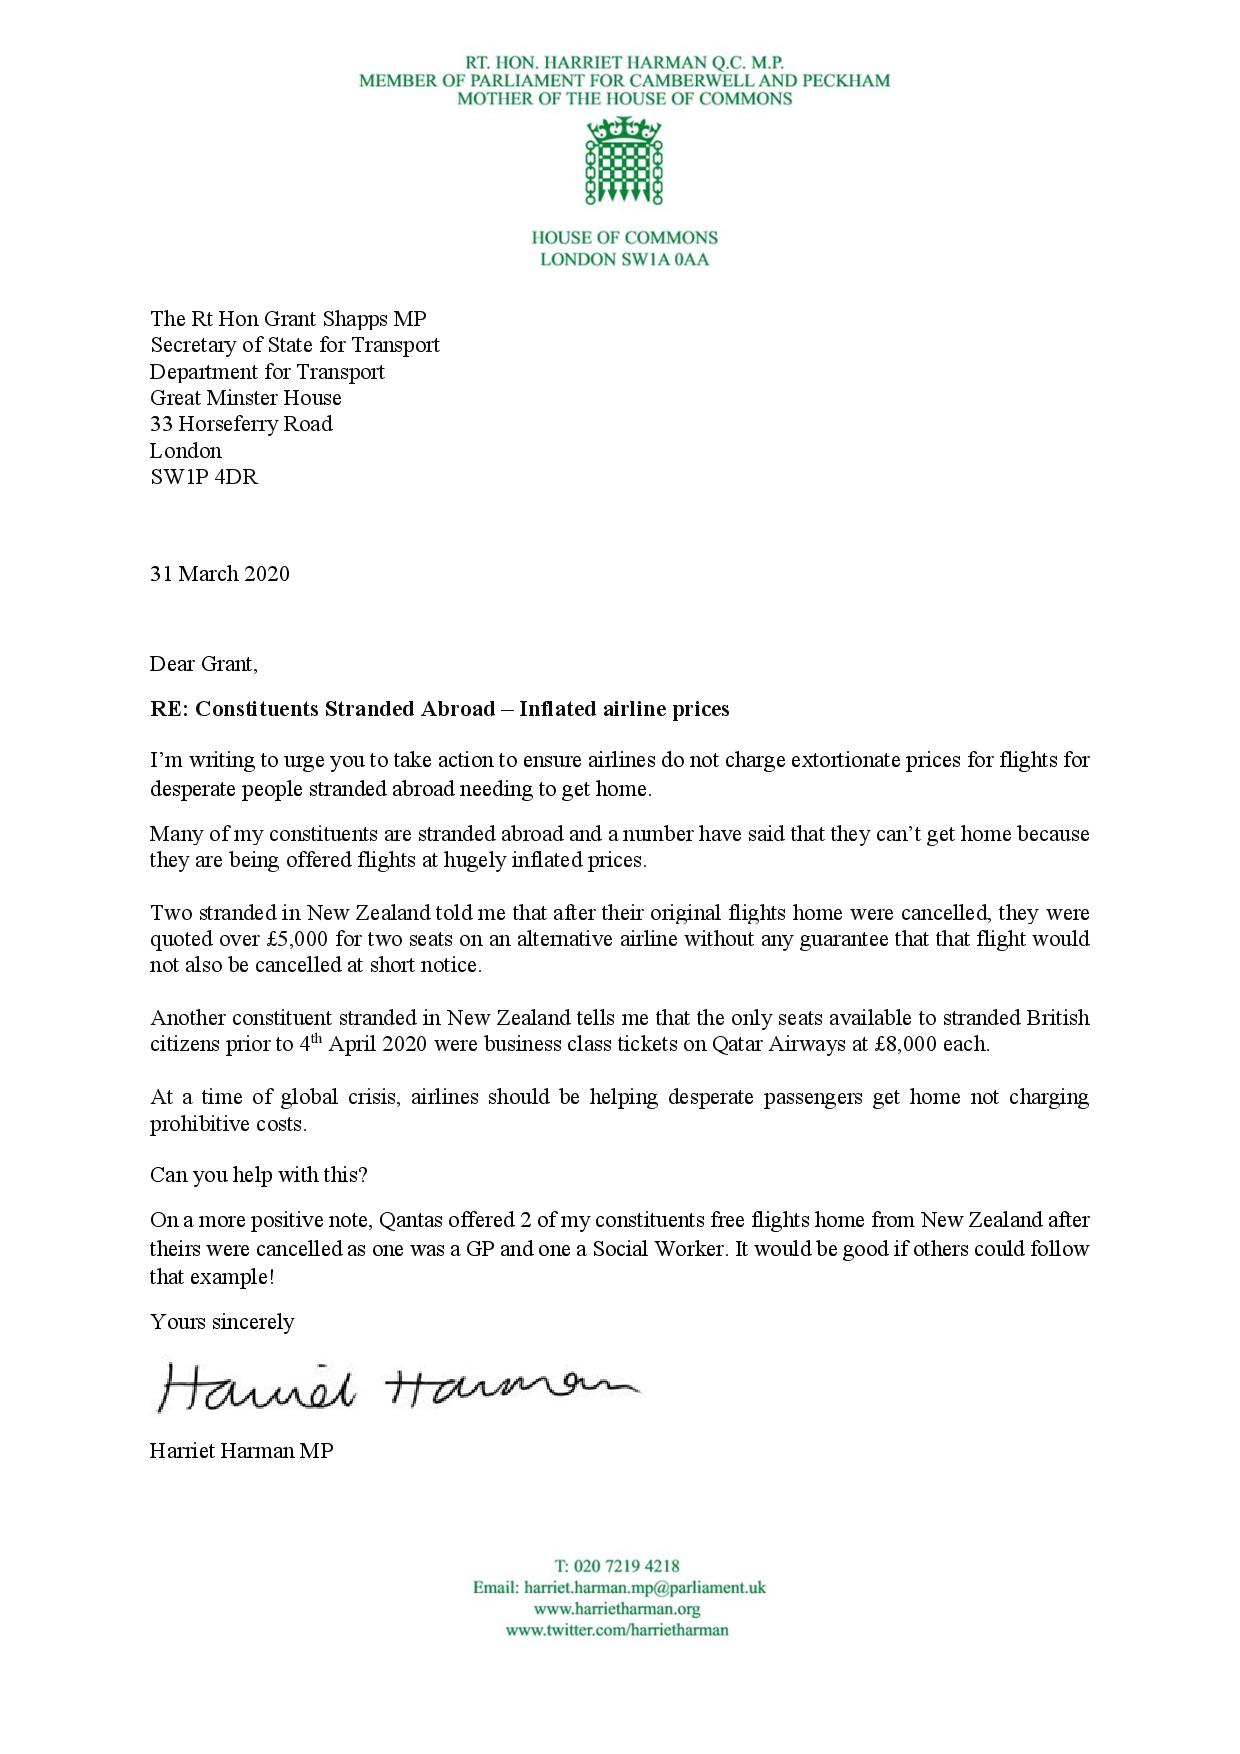 31.03.2020_-_Letter_to_Grant_Shapps_MP-page-001.jpg